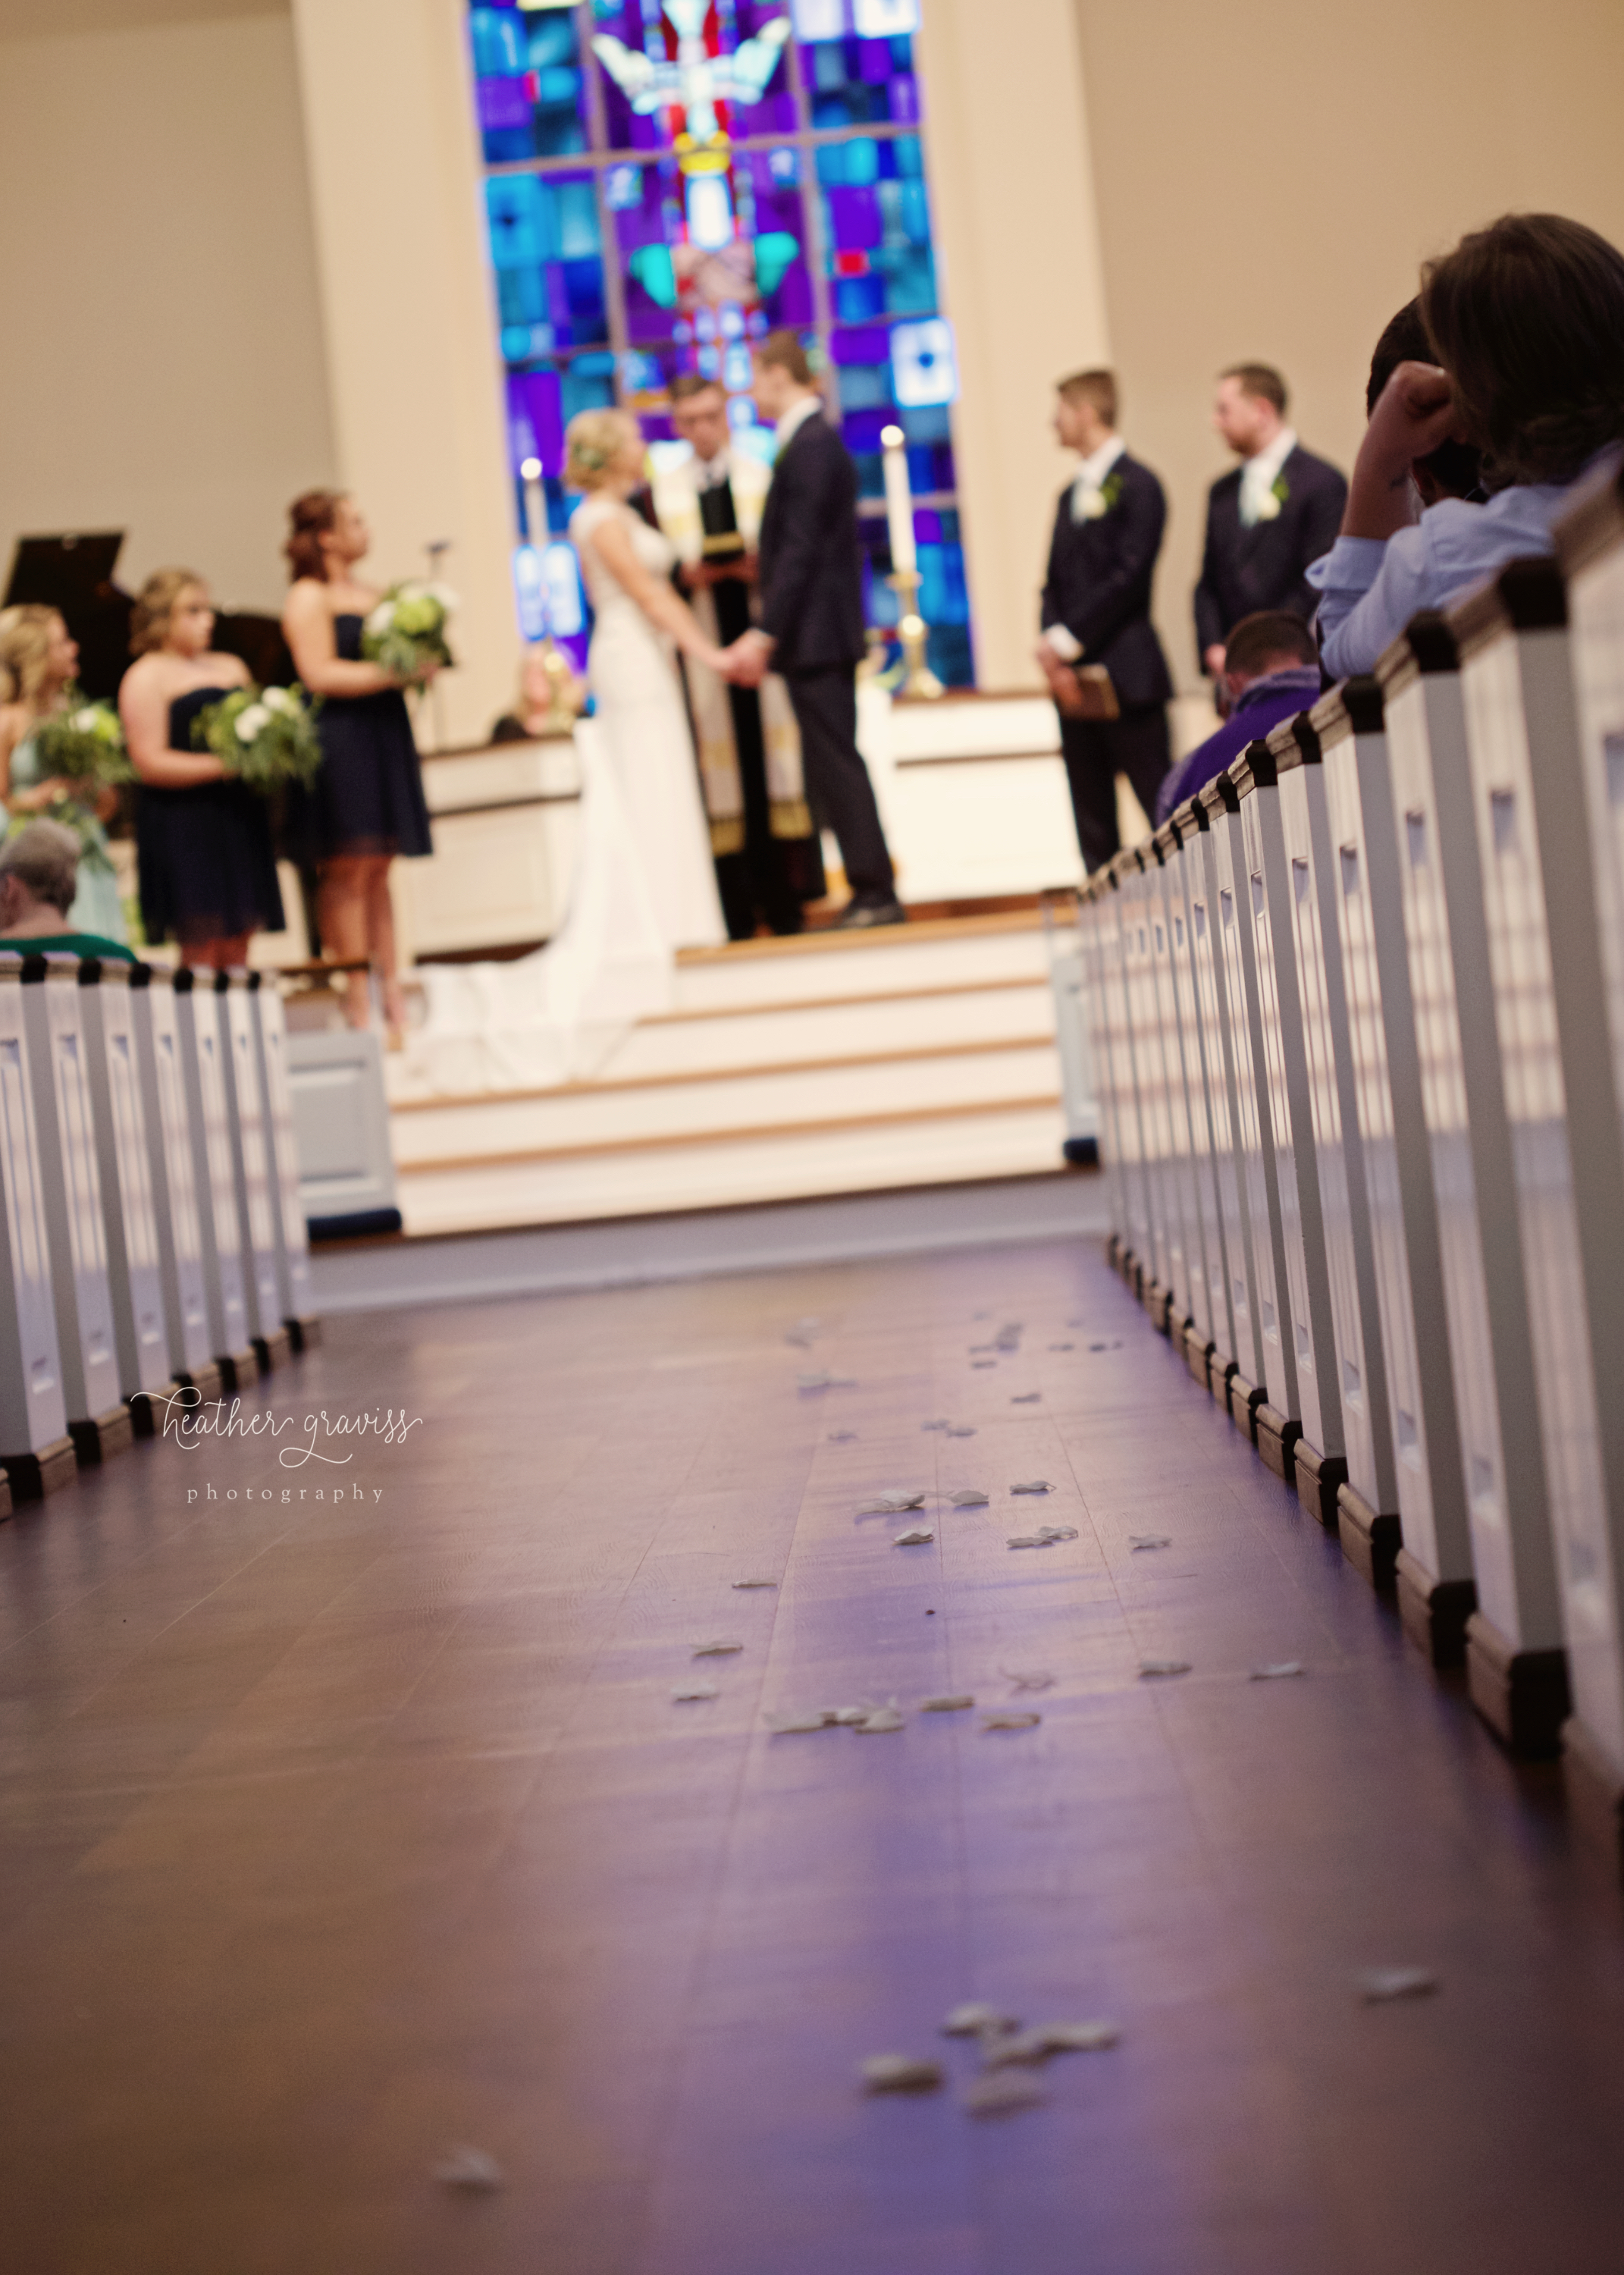 nashville middle tn wedding 066.jpg